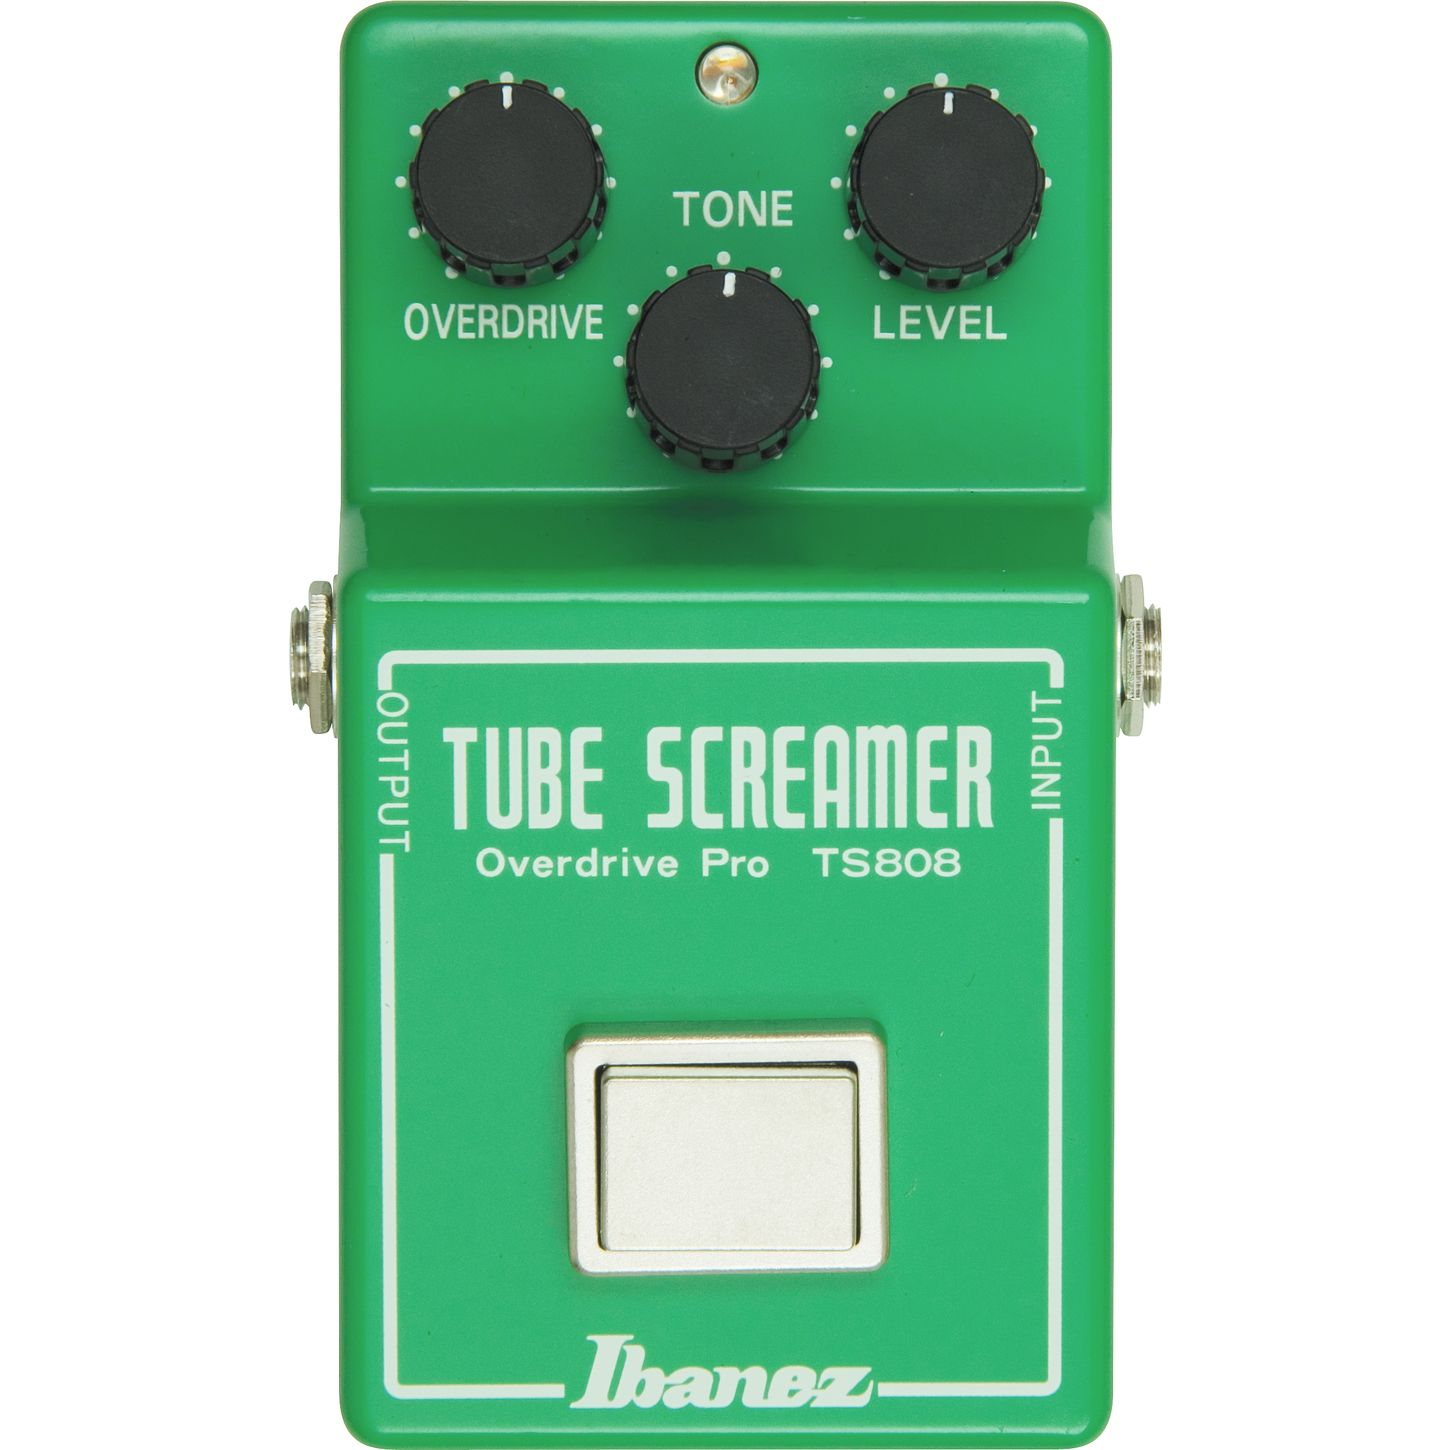 Mosfet further Dumble Schematic further ZWduYXRlciBzY2hlbWF0aWNz further Hour Logging Cb Radio as well Ibanez Ts808hw Tube Screamer Schematic. on tube overdrive schematic